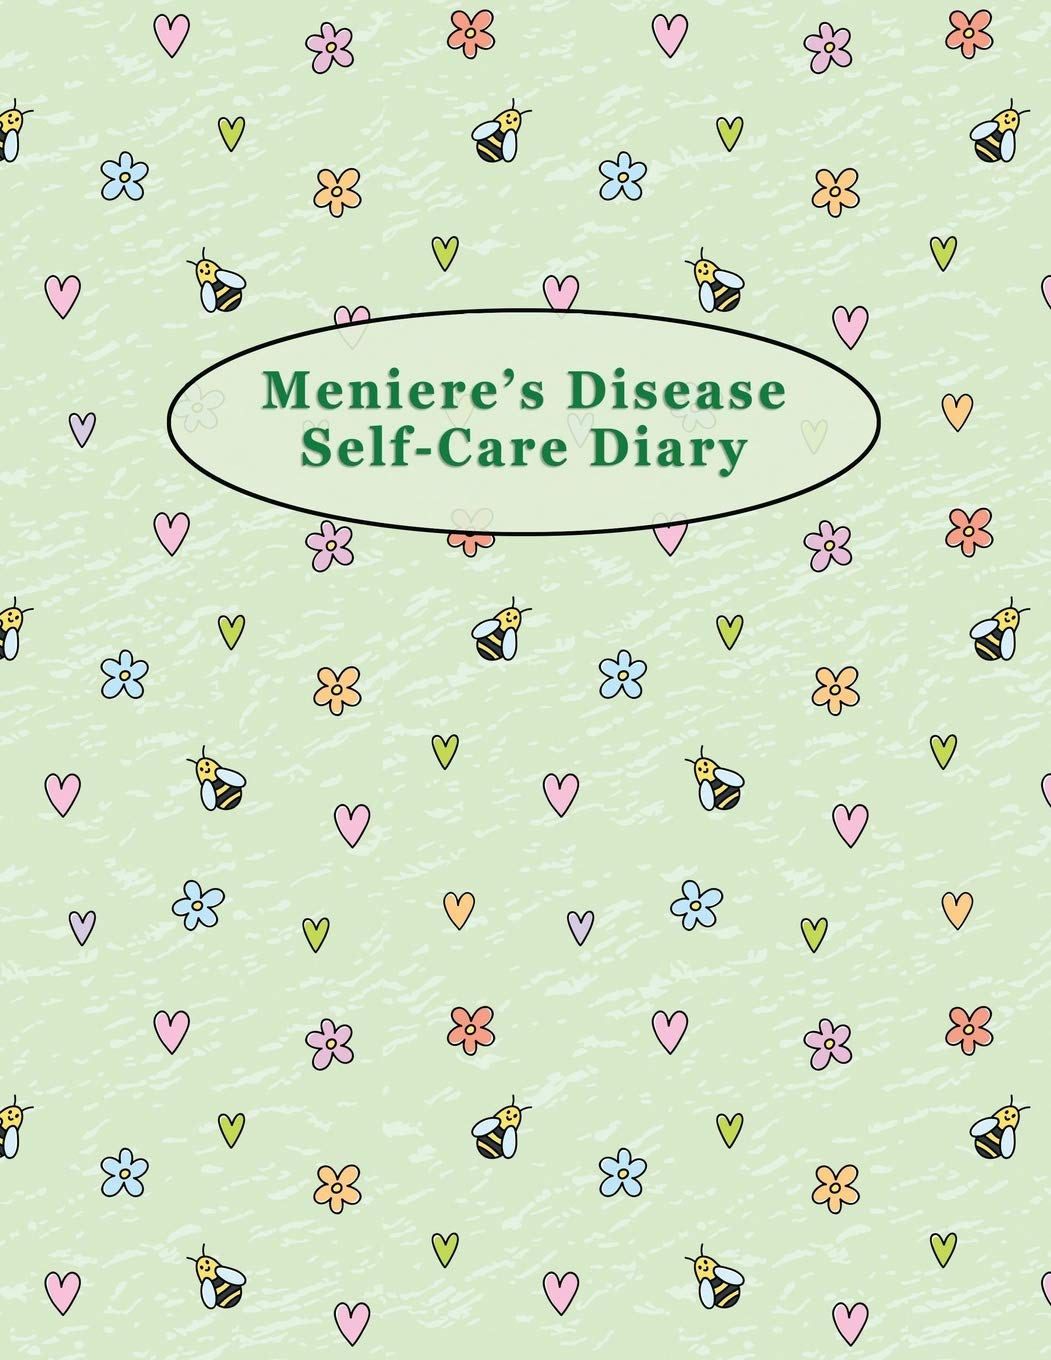 Meniere S Disease Self Care Diary Daily Record For Your Symptoms Diet Triggers And More 8 5 X 11 Bees And Flowers Cover Records Babbs 9781707437245 Amazon Com Books